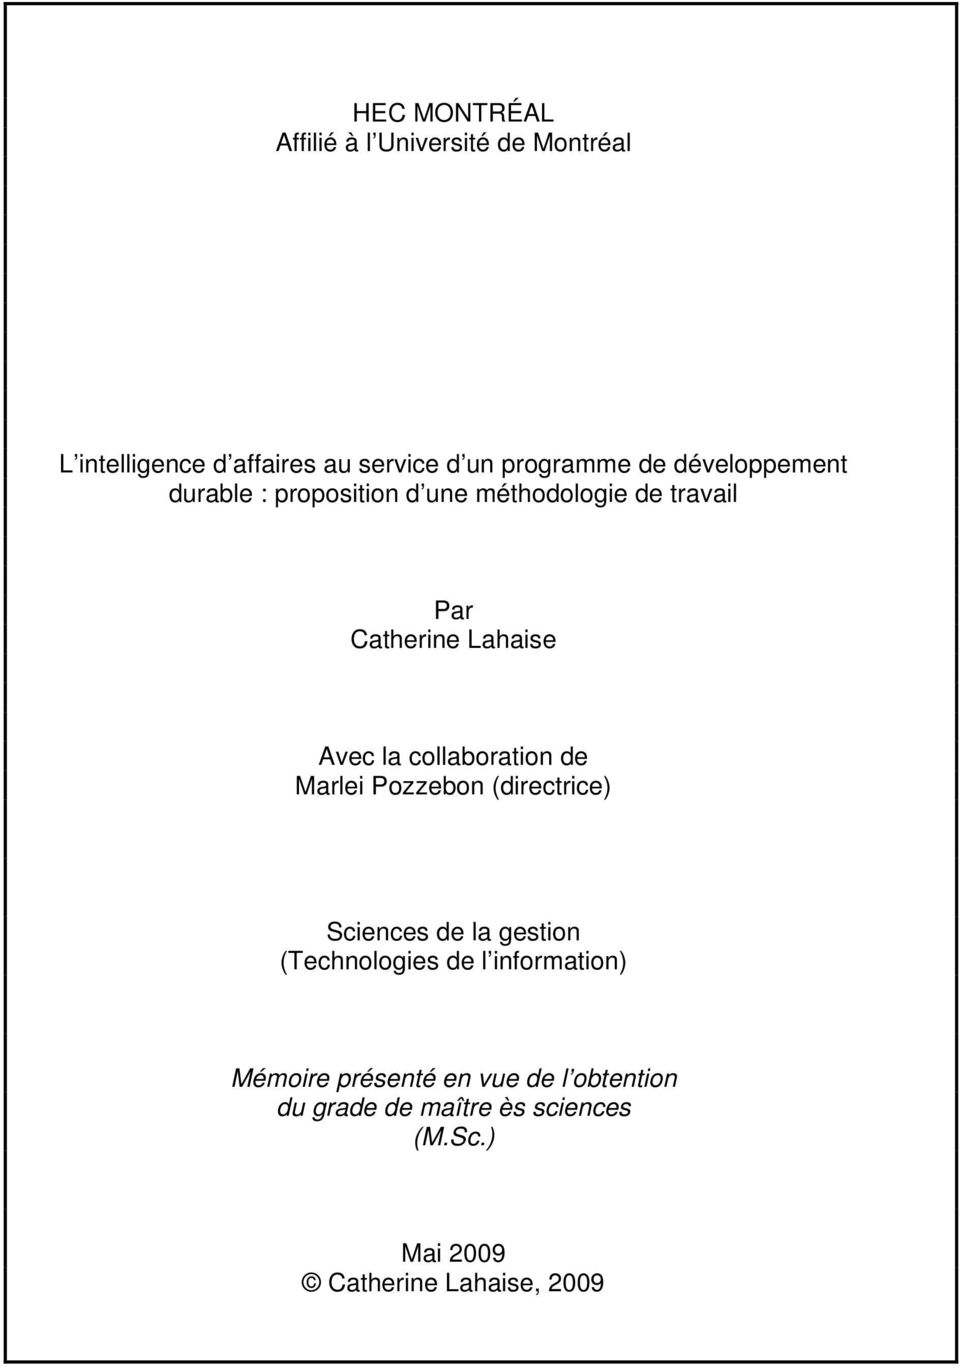 collaboration de Marlei Pozzebon (directrice) Sciences de la gestion (Technologies de l information)